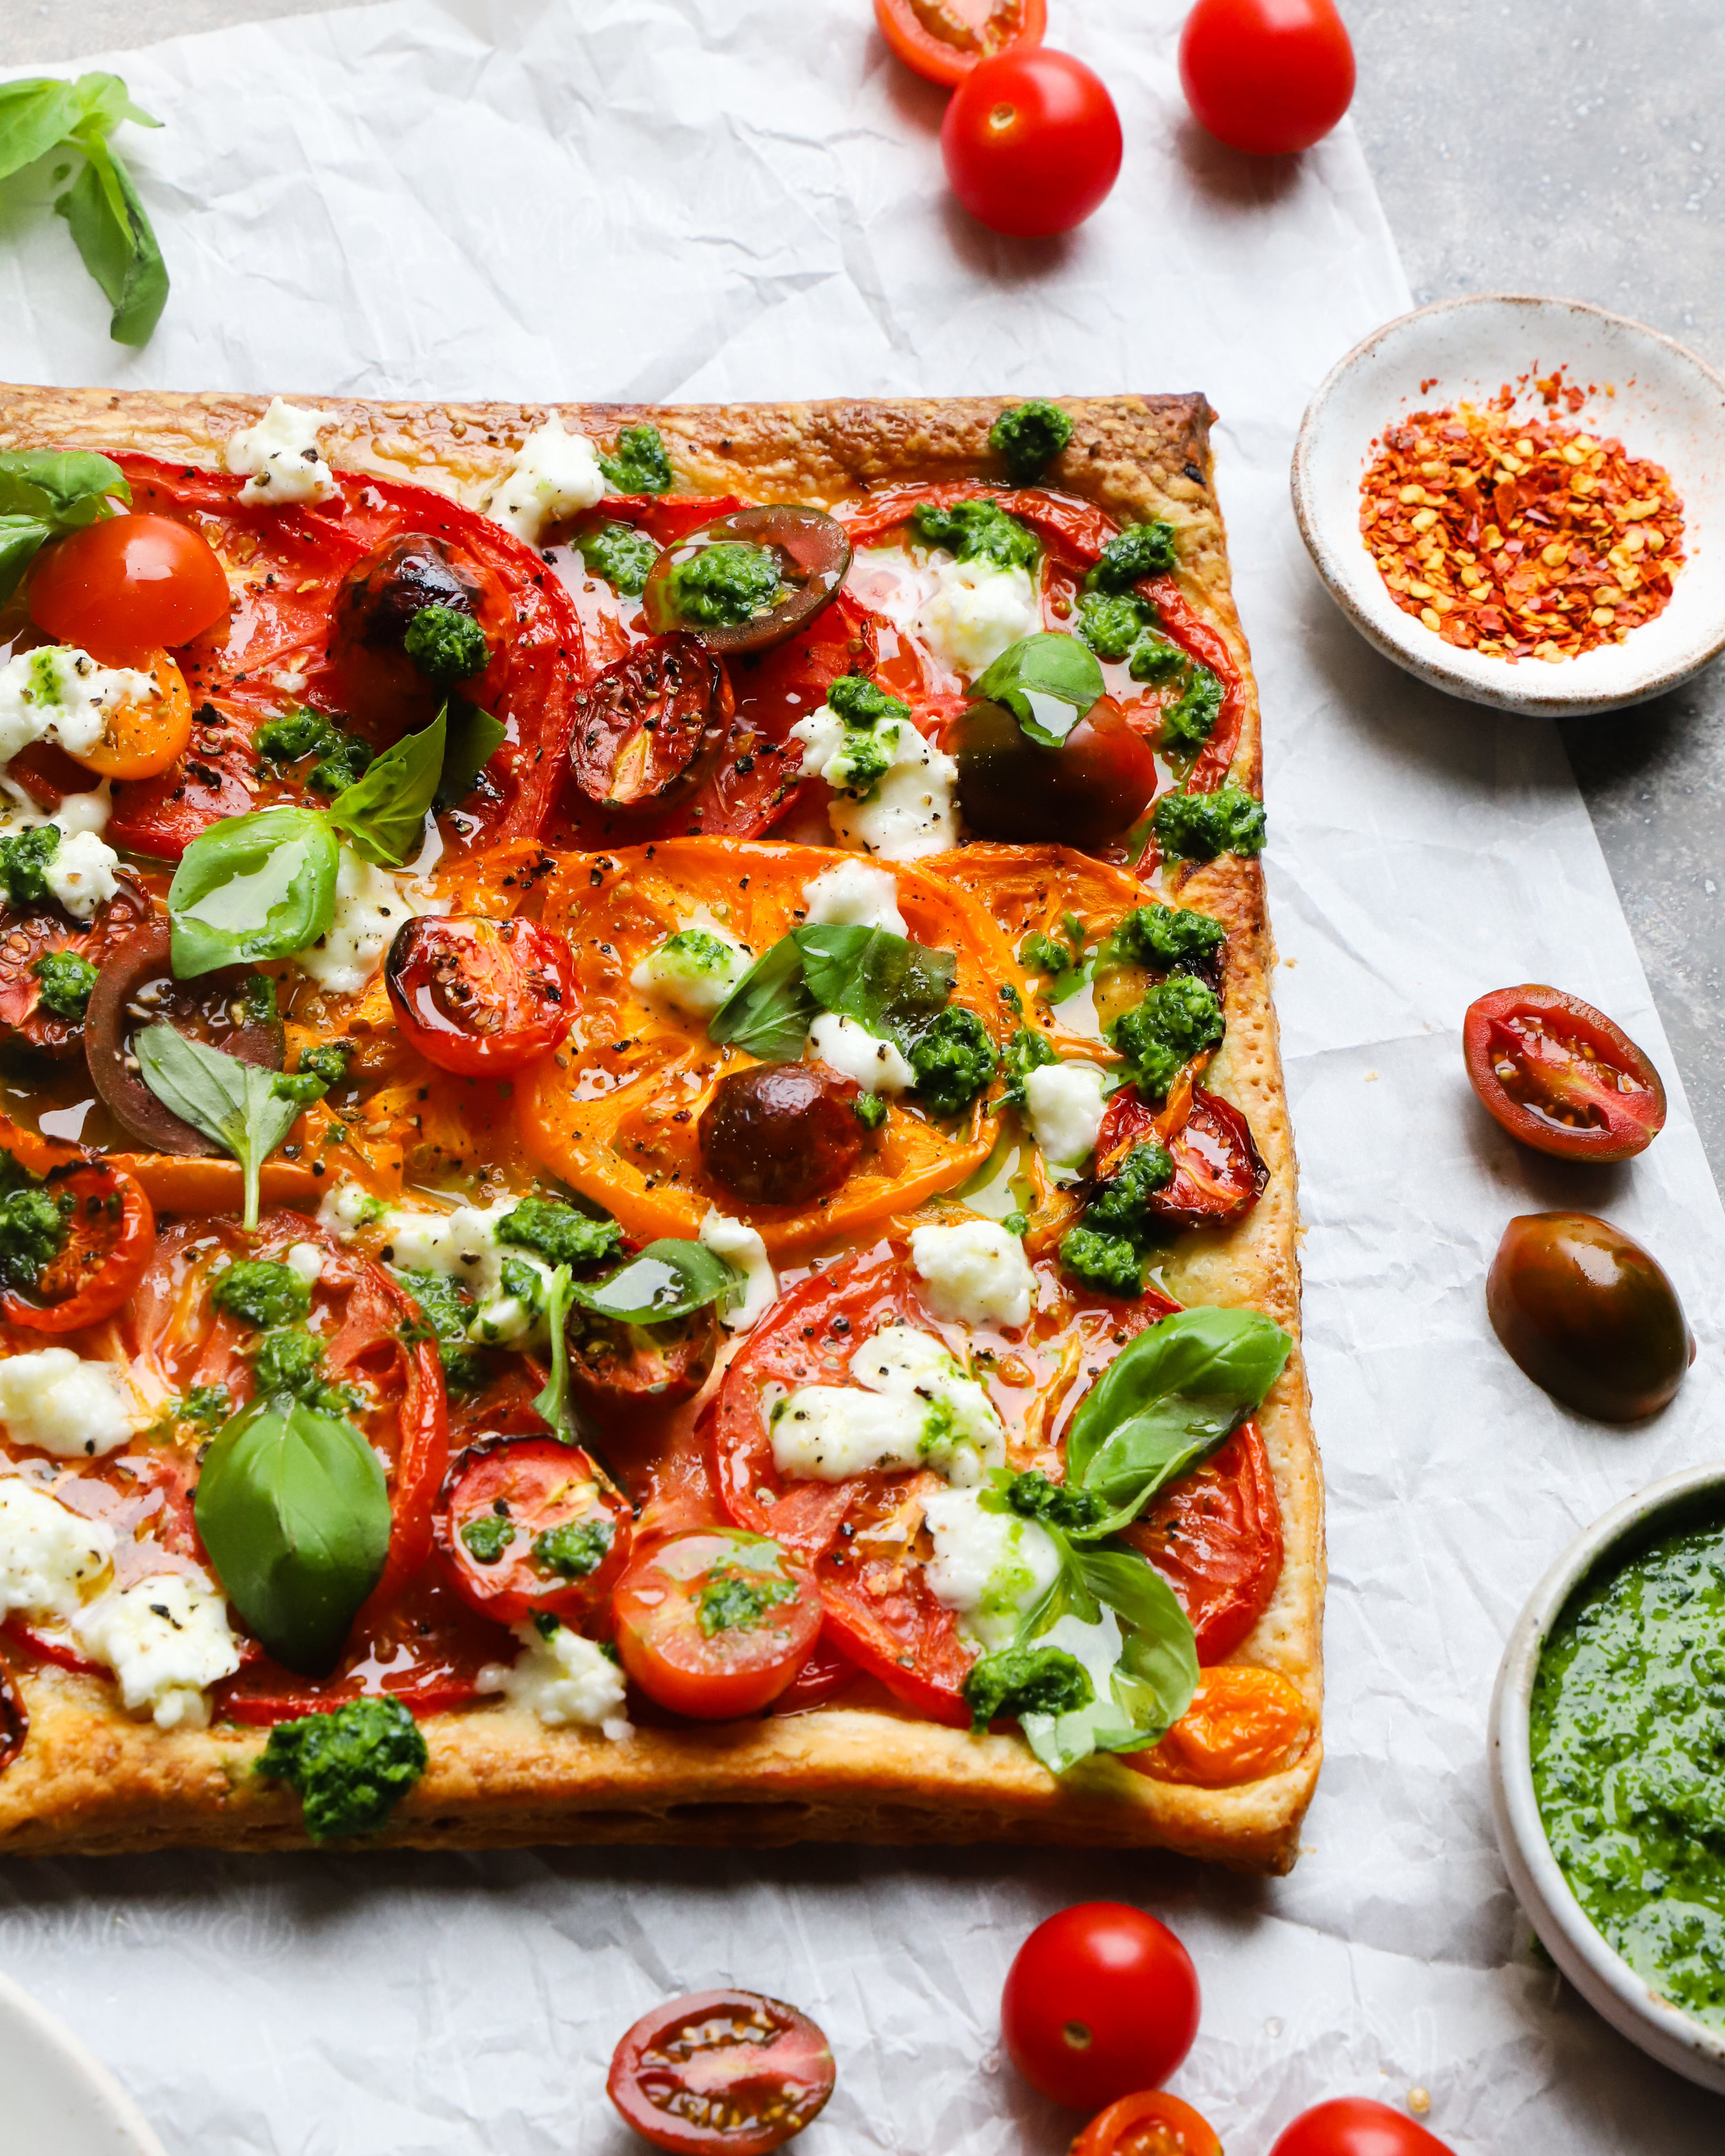 Heirloom Tomato Tart with Cilantro Chutney